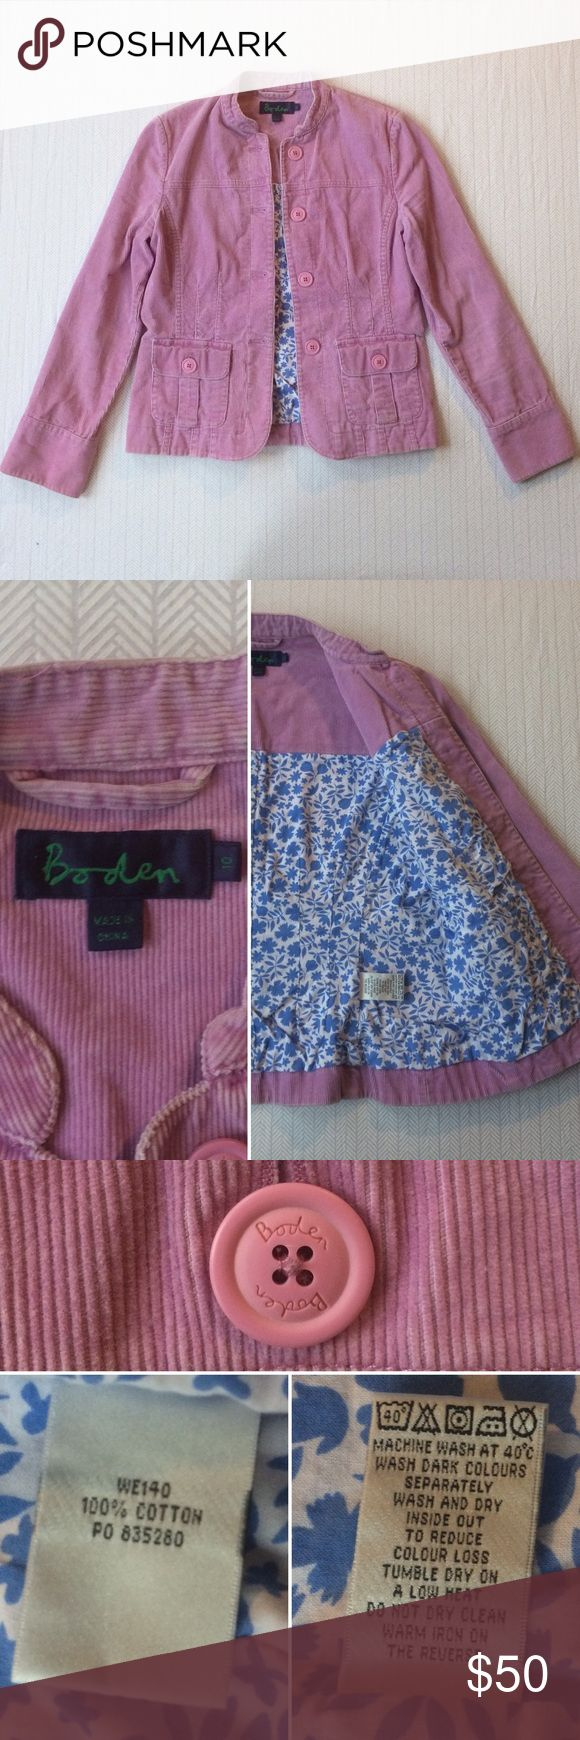 """💕🌷Boden Corduroy Jacket Think spring with this great orchid pink corduroy jacket from Boden. This one has amazing details, like adorable Boden buttons and a blue and white floral lining. In excellent used condition. 17.5"""" pit to pit. 23"""" from shoulder to hem. Make me an offer. Discount on bundles of two or more. Boden Jackets & Coats"""